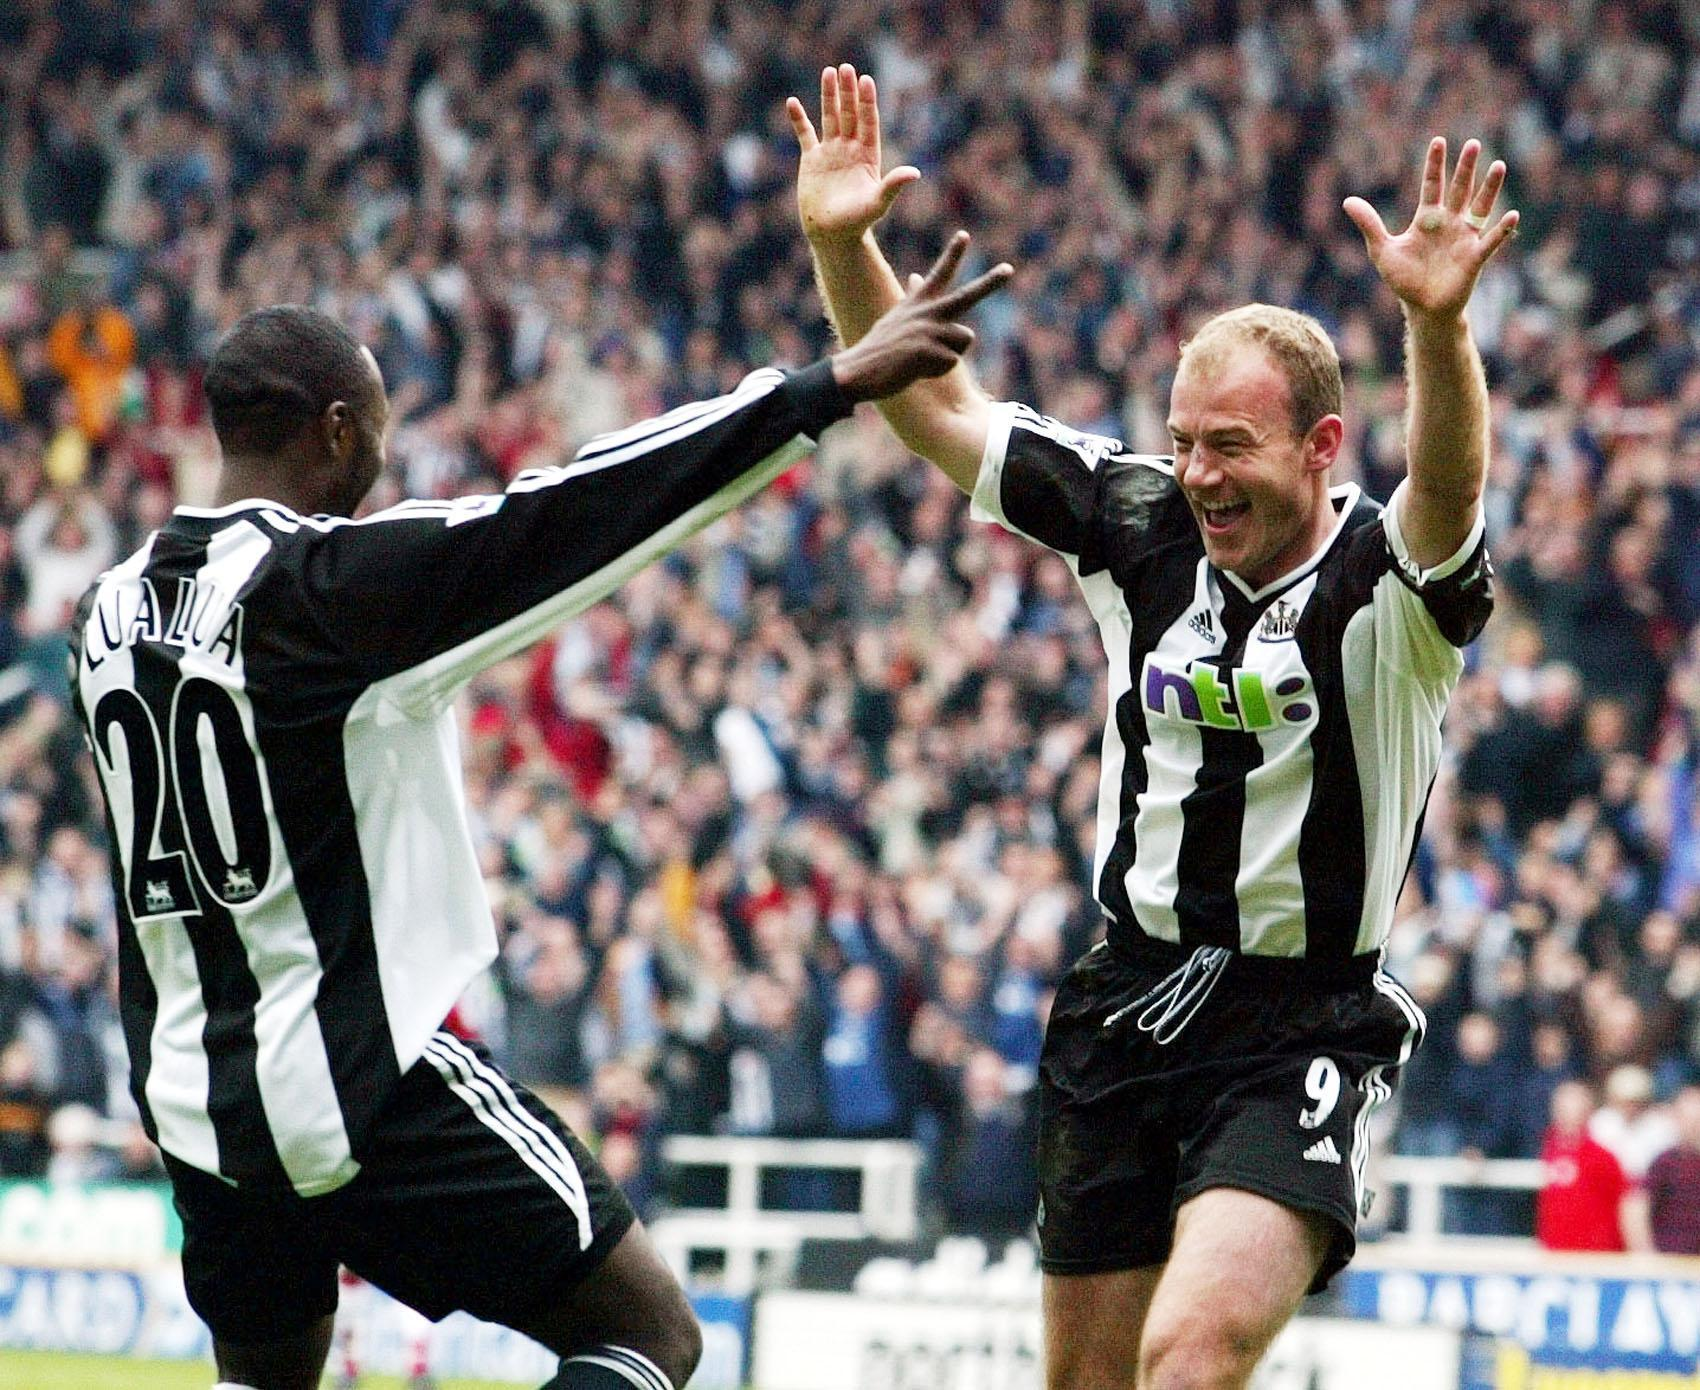 Alan Shearer celebrates scoring his 200th Premier League goal